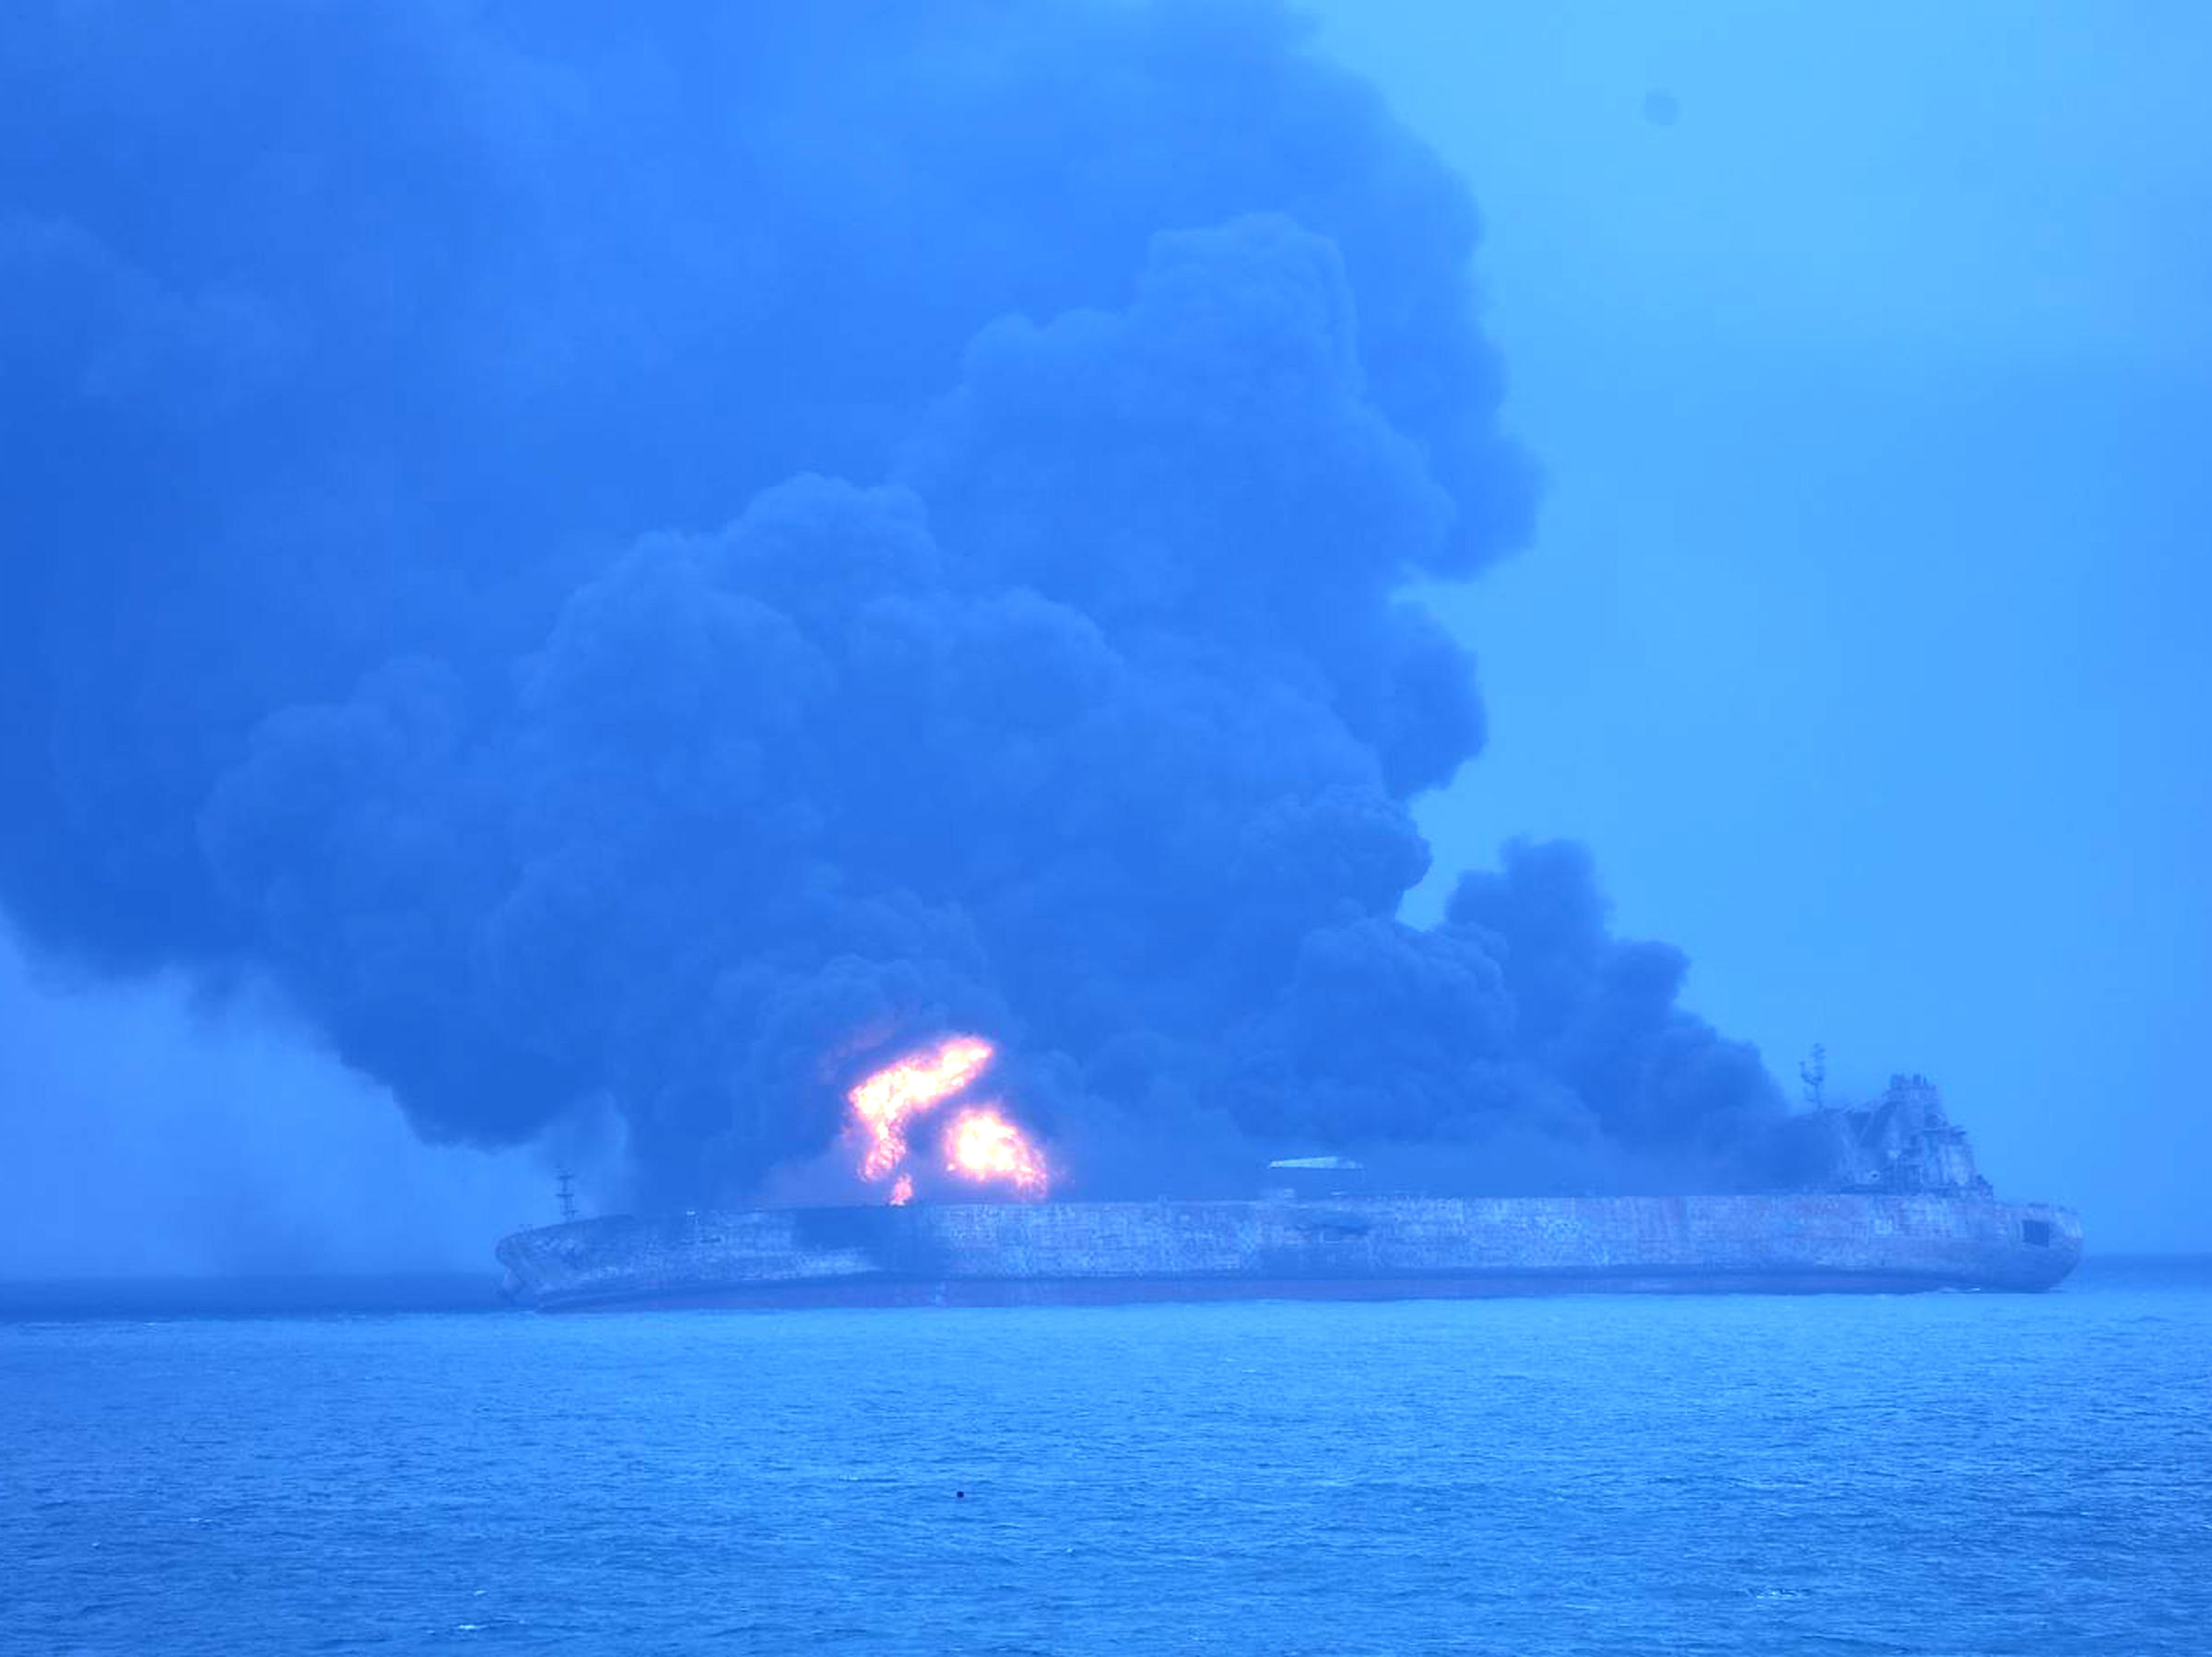 Iranian oil tanker on fire in East China Sea - 32 crew missing